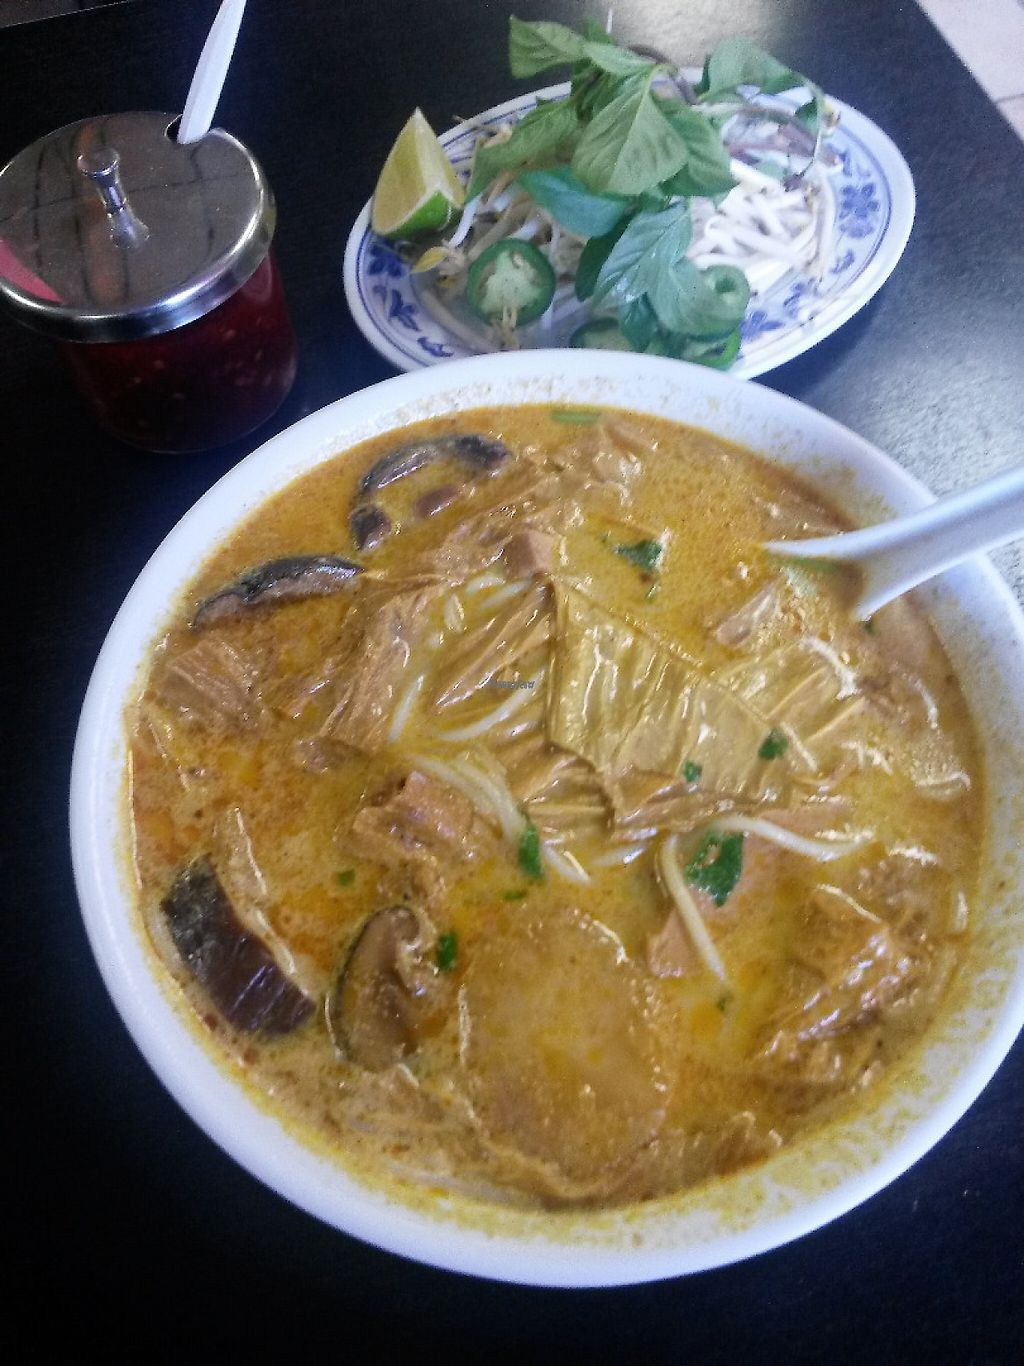 """Photo of Veggie Life Restaurant  by <a href=""""/members/profile/Taro"""">Taro</a> <br/>Curry with rice noodle soup, fresh sprouts and jalapeno and basil to top it.   <br/> February 8, 2017  - <a href='/contact/abuse/image/14017/224098'>Report</a>"""